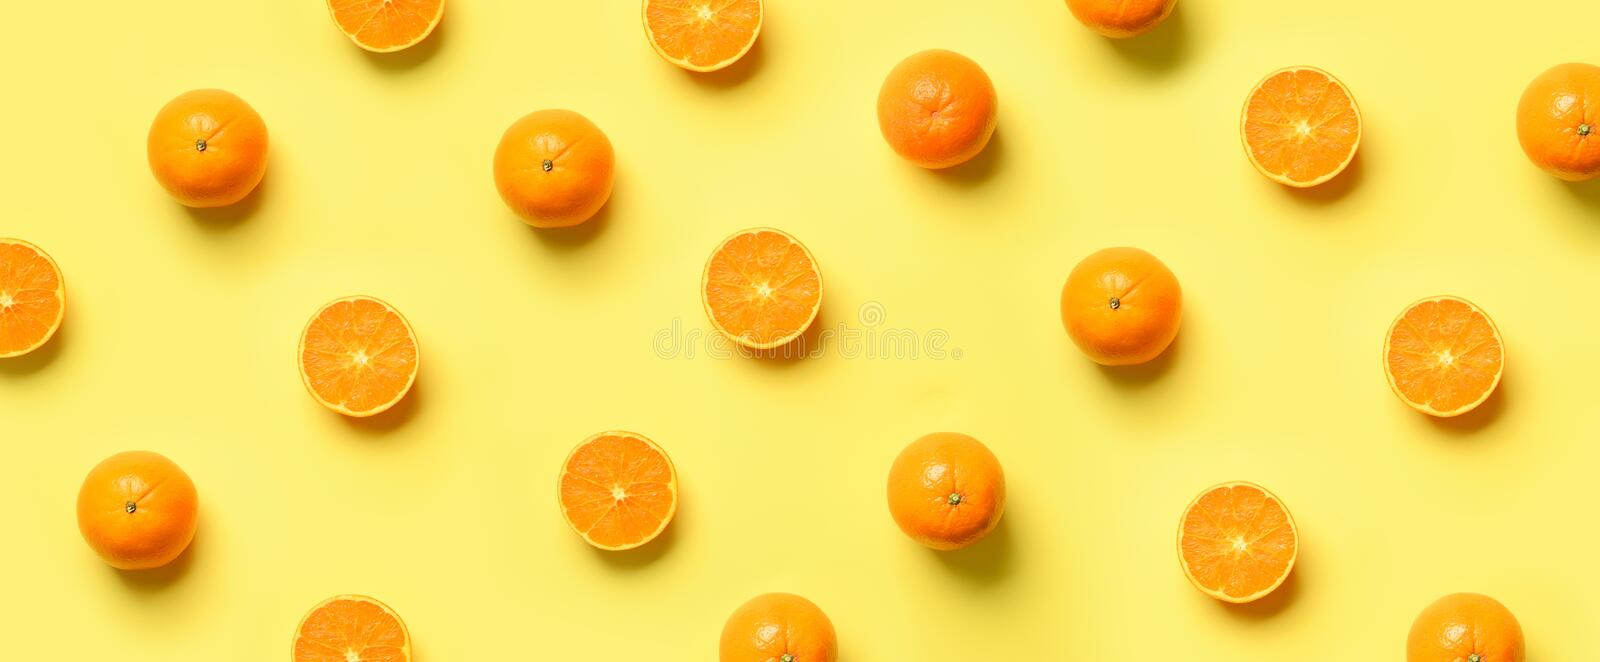 Fruit pattern of fresh orange slices on yellow background. Top view. Copy Space. Pop art design, creative summer concept. Half of. Citrus in minimal flat lay royalty free stock image